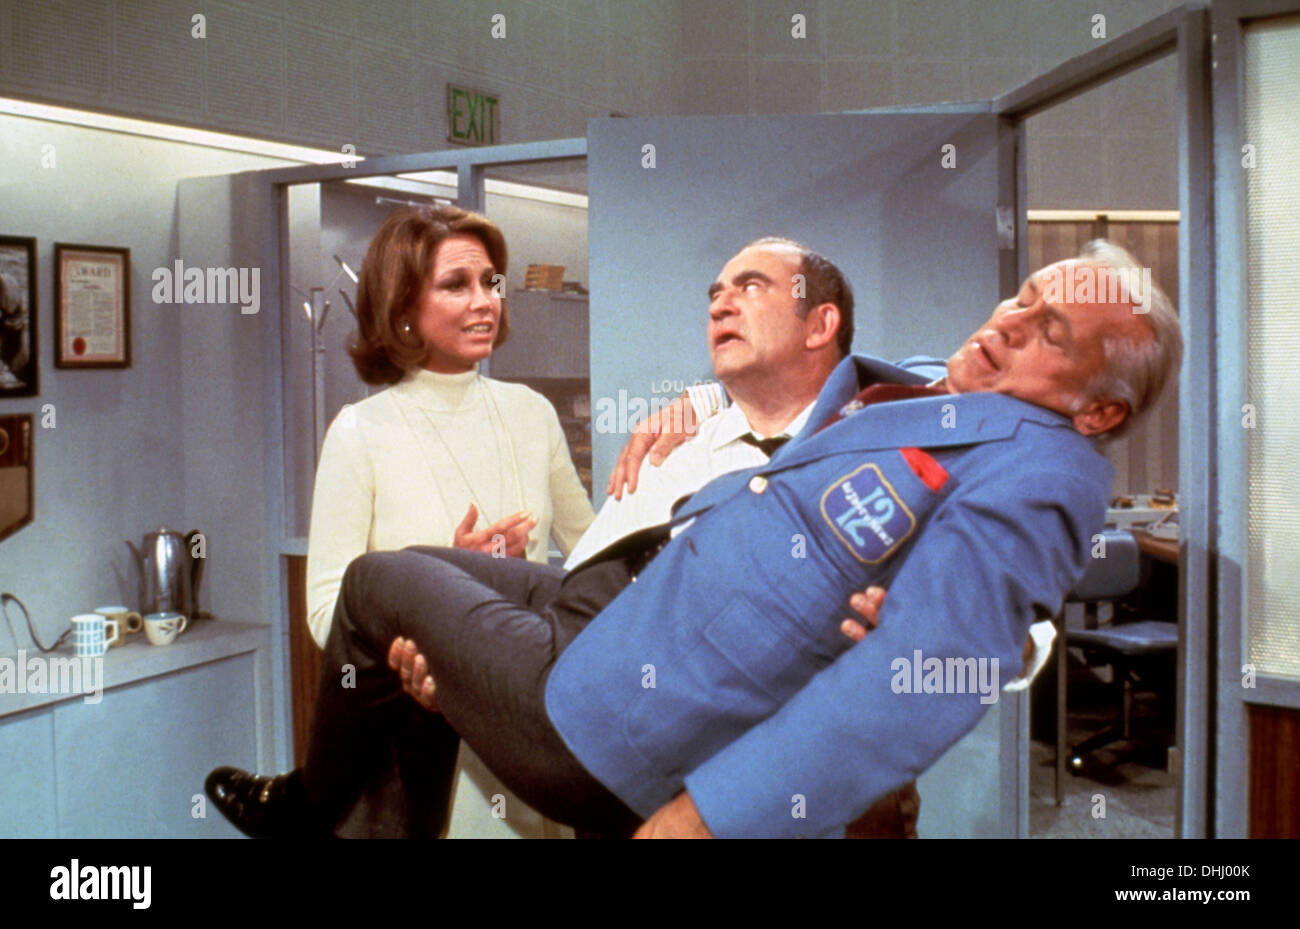 MARY TYLER MOORE SHOW (TV) (1970-1977) MARY TYLER MOORE, EDWARD ASNER, TED KNIGHT, MTMS 003 MOVIESTORE COLLECTION LTD - Stock Image